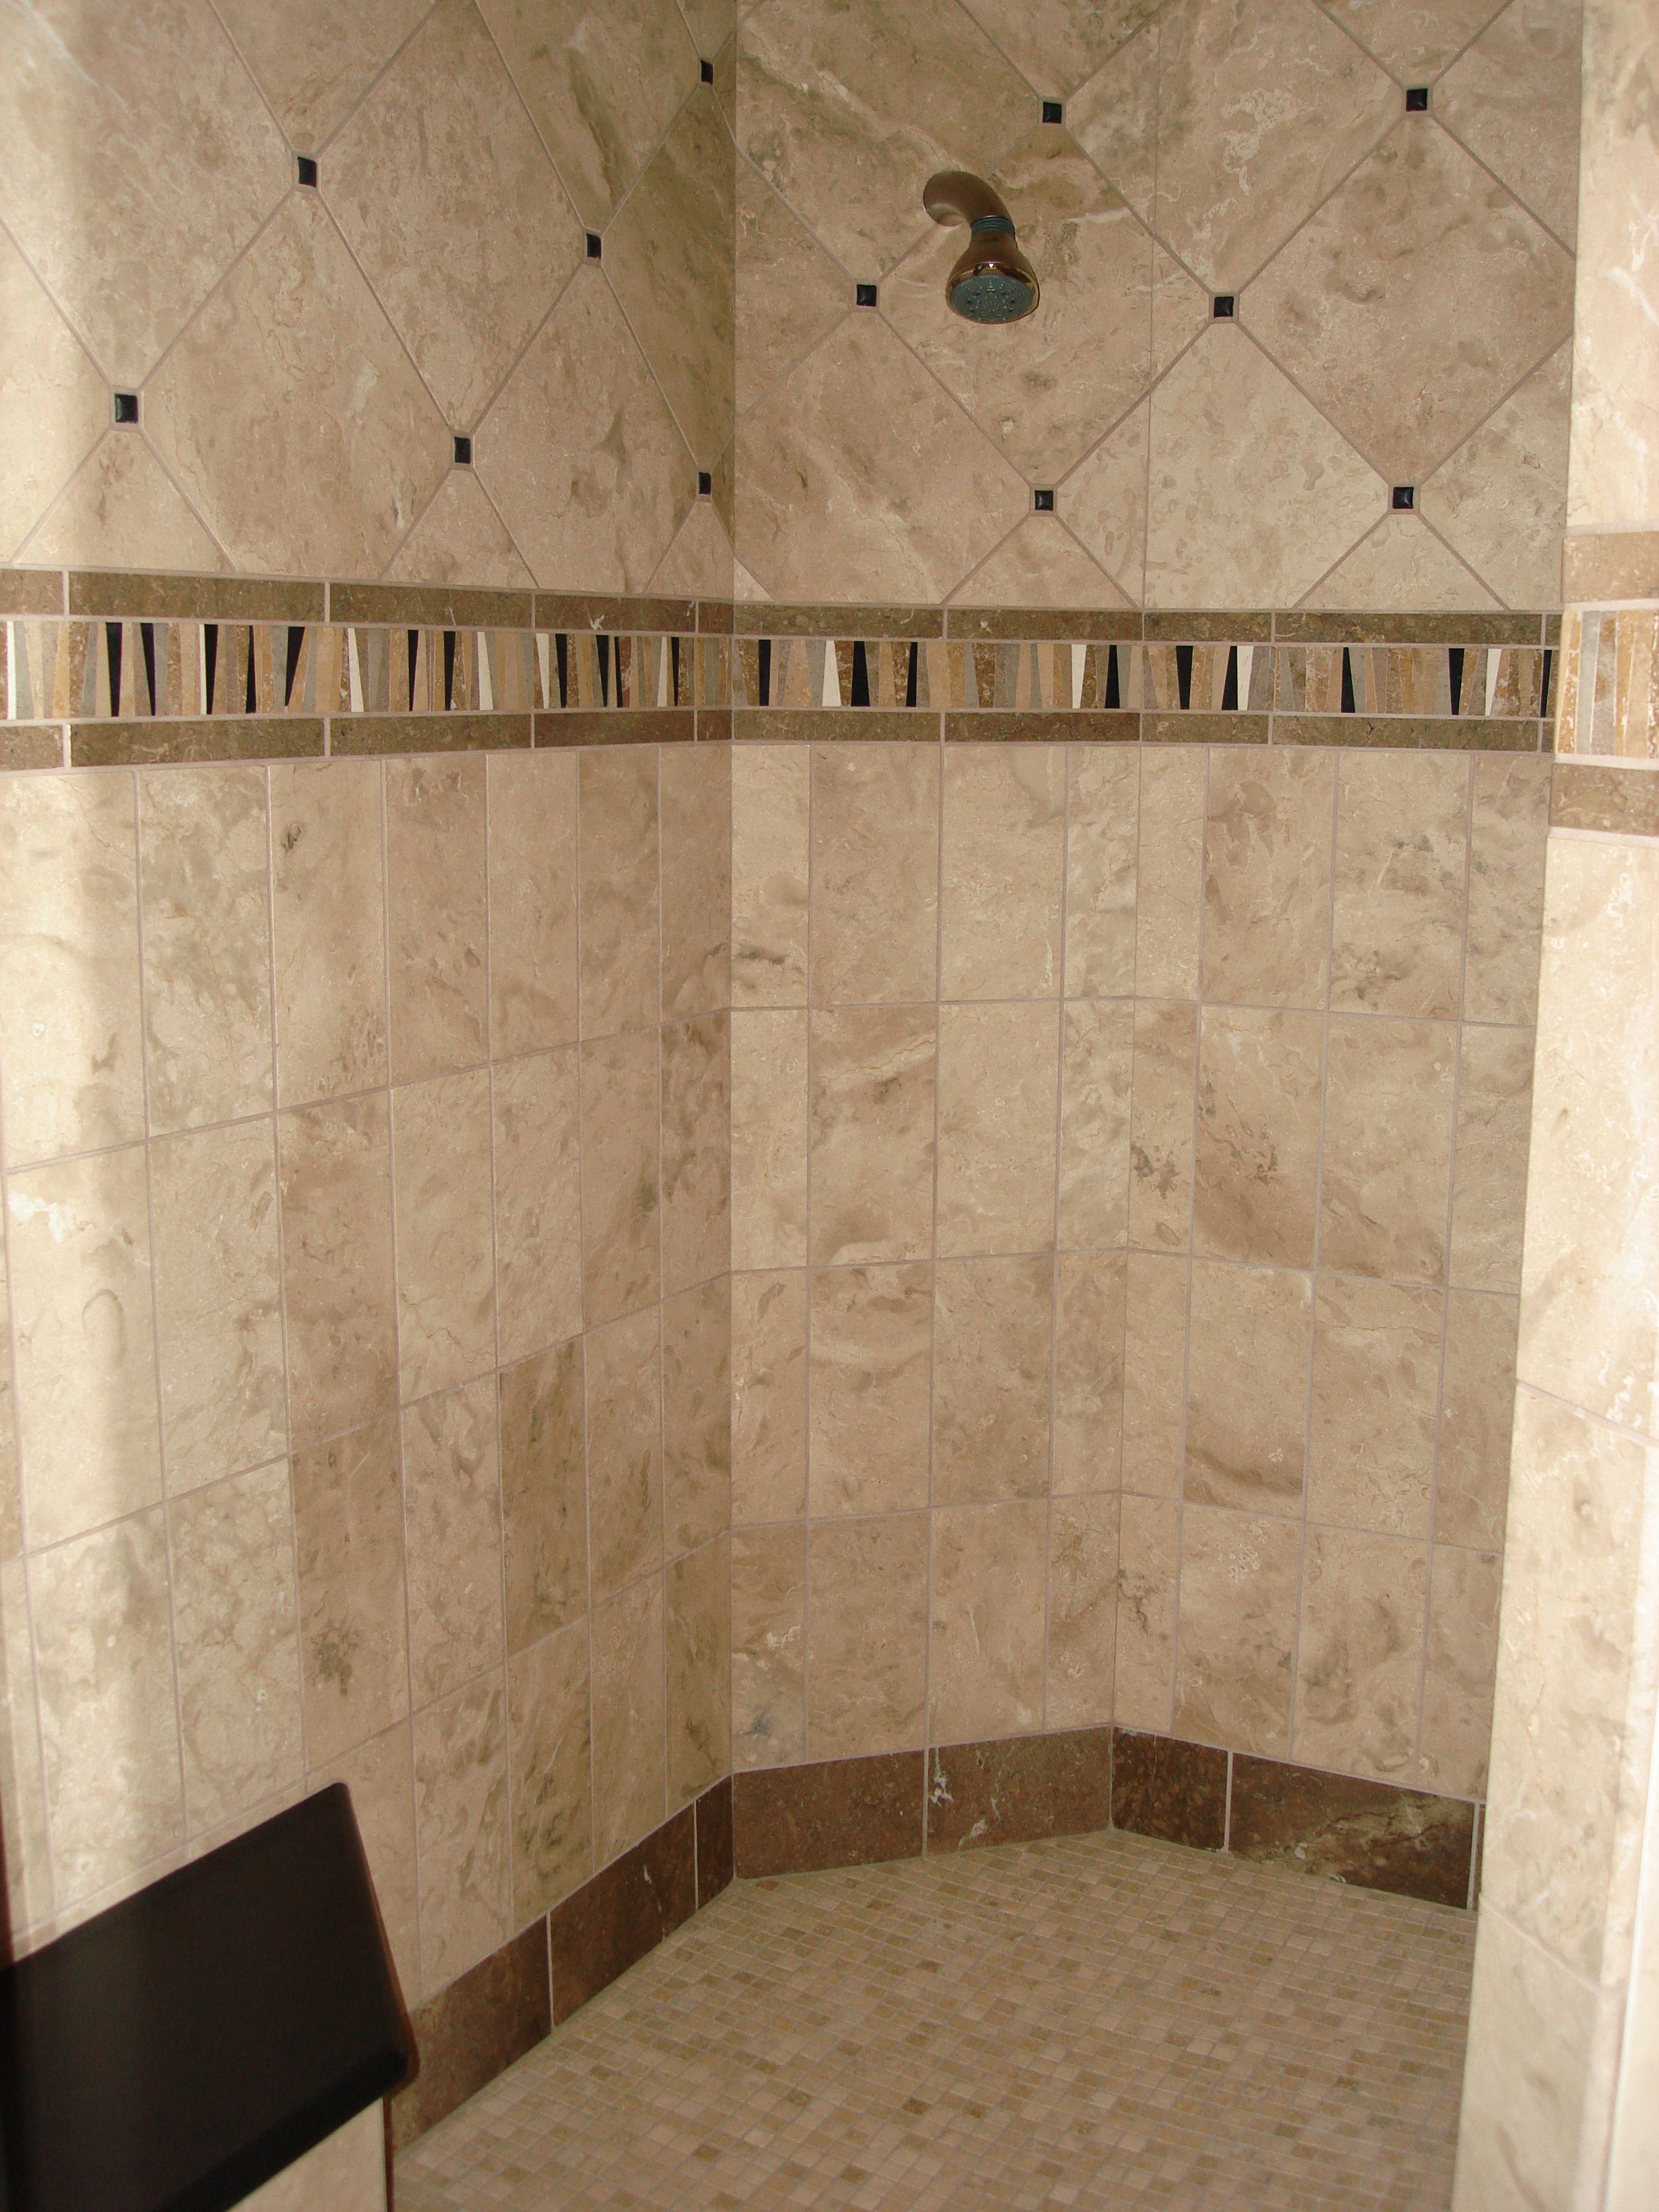 1000 images about shower tile ideas on pinterestshower tiles - Shower Wall Tile Design